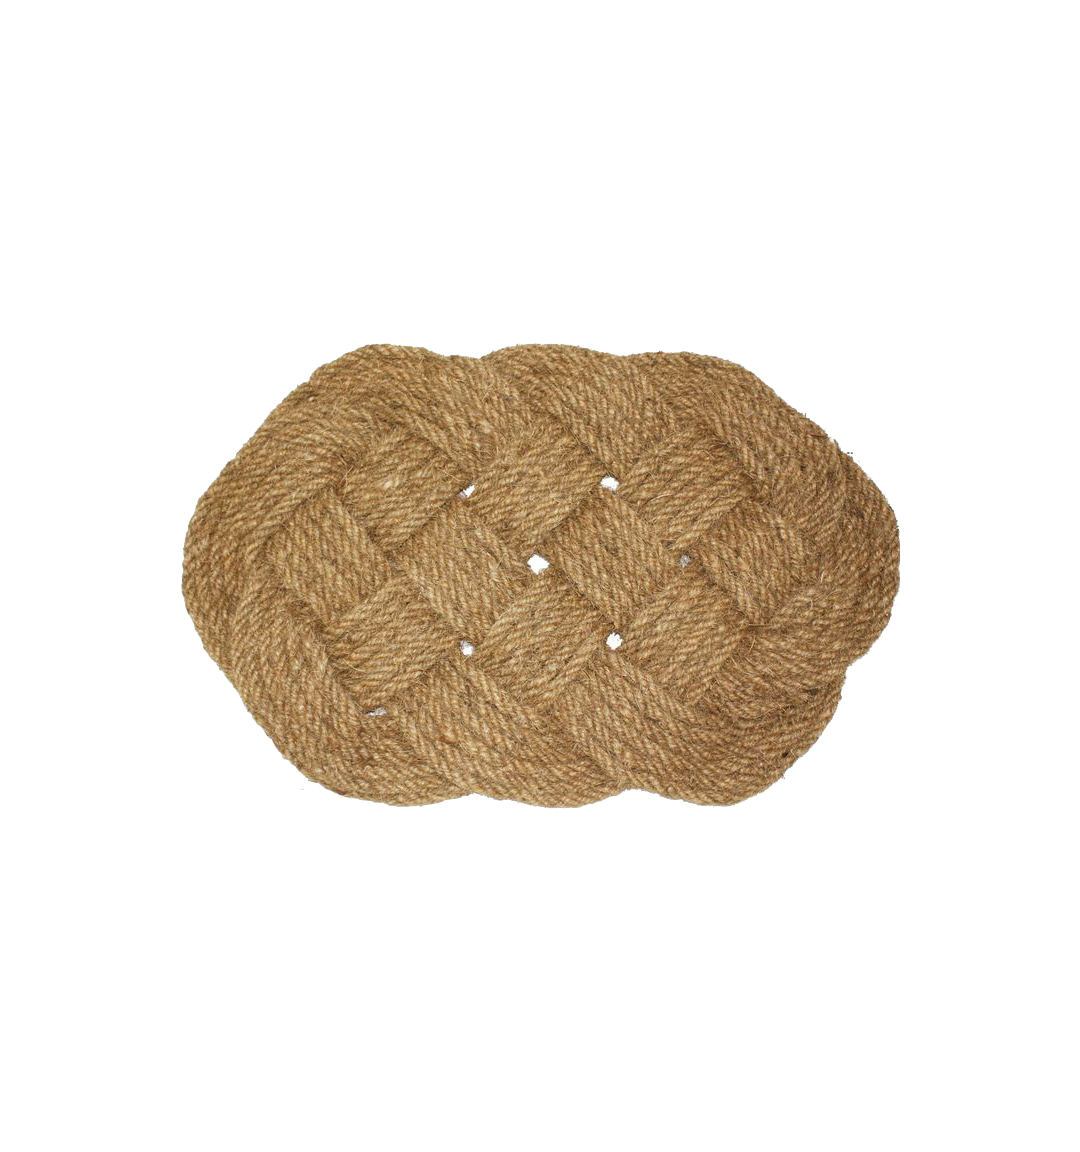 Oval Knot Woven Coco Doormat